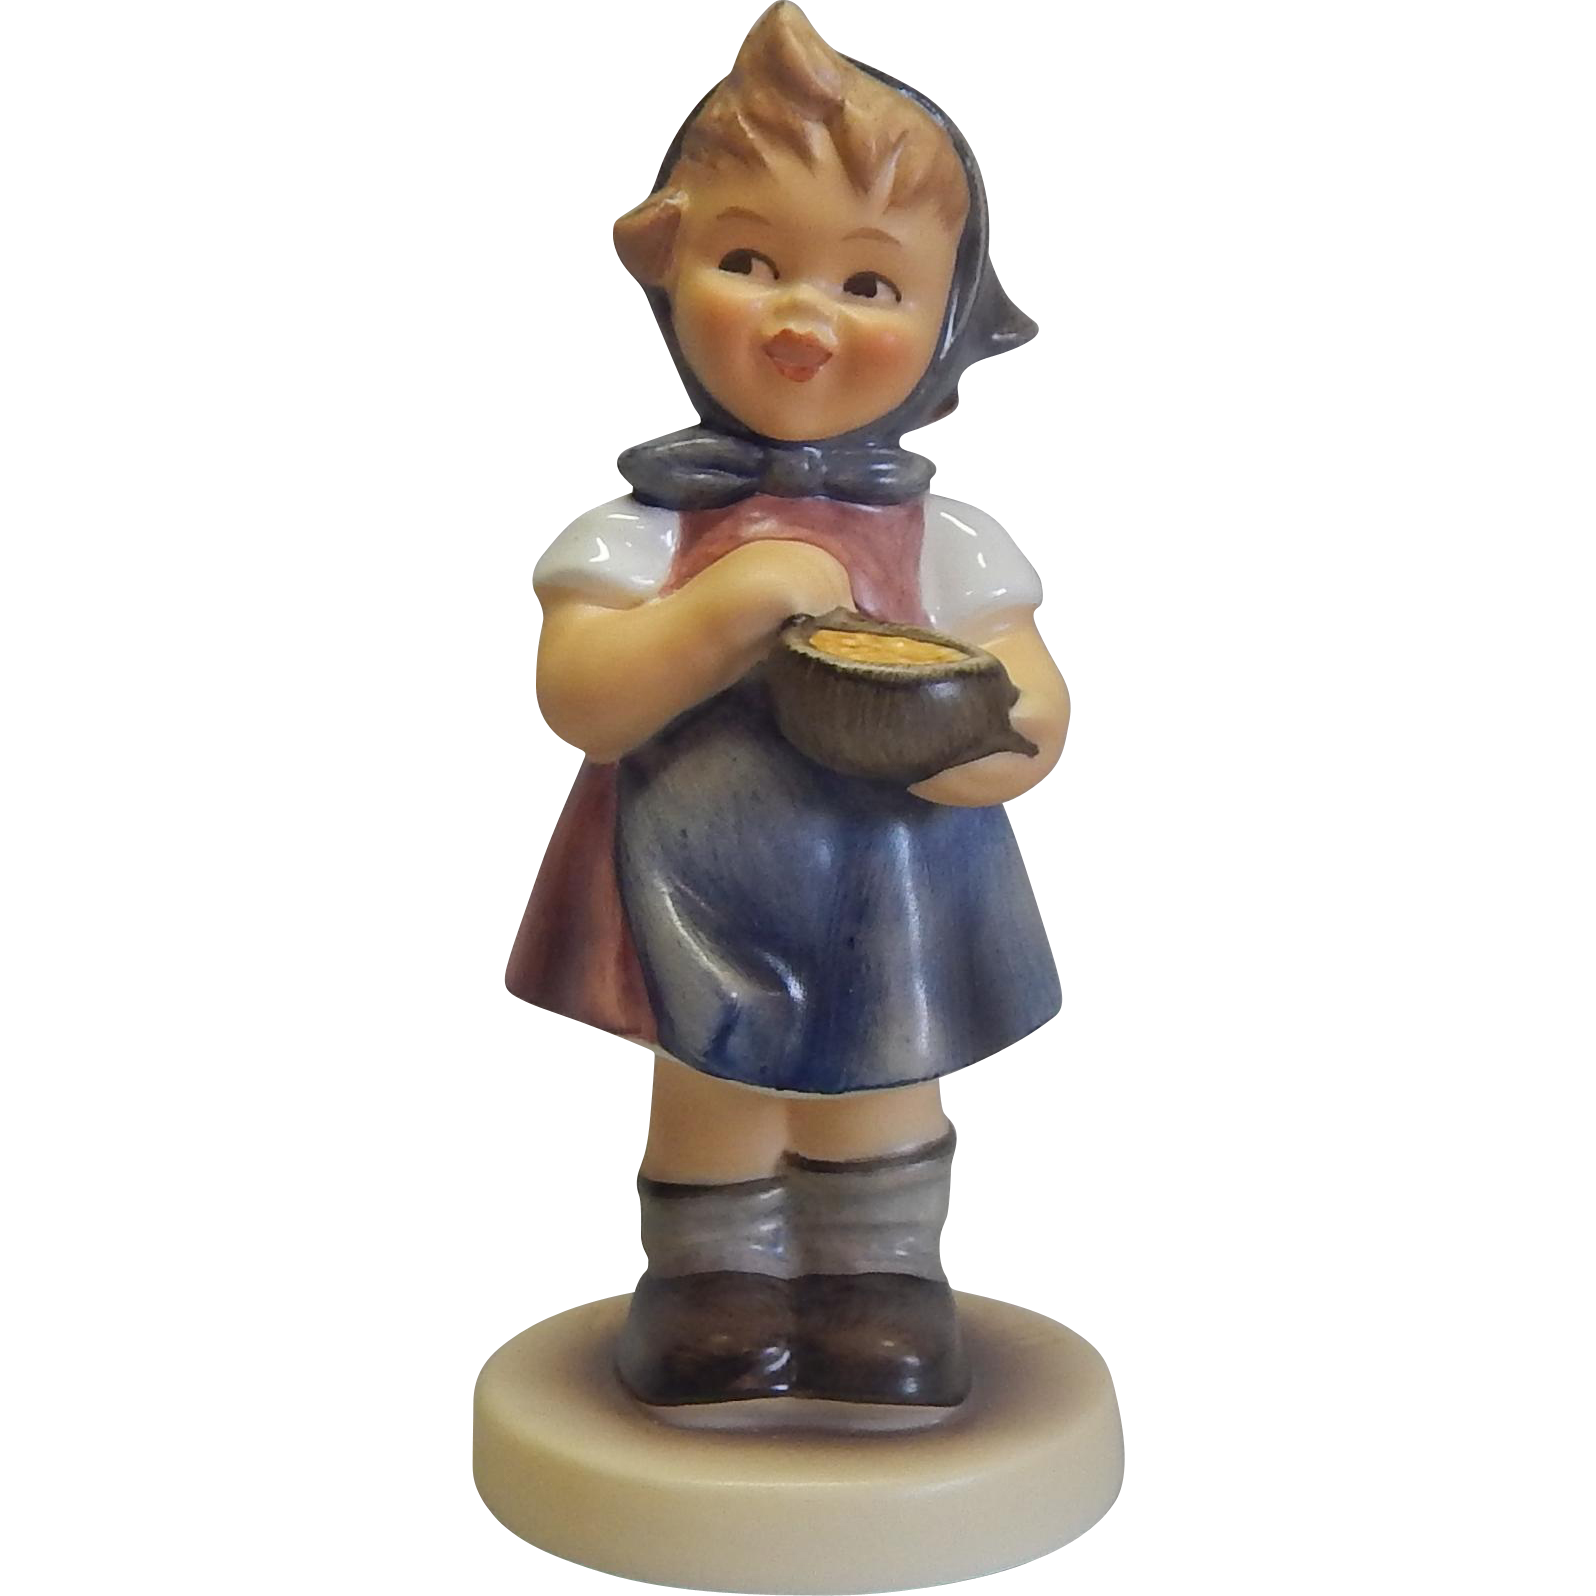 Goebel M.I. Hummel Club Edition From Me To You Figurine